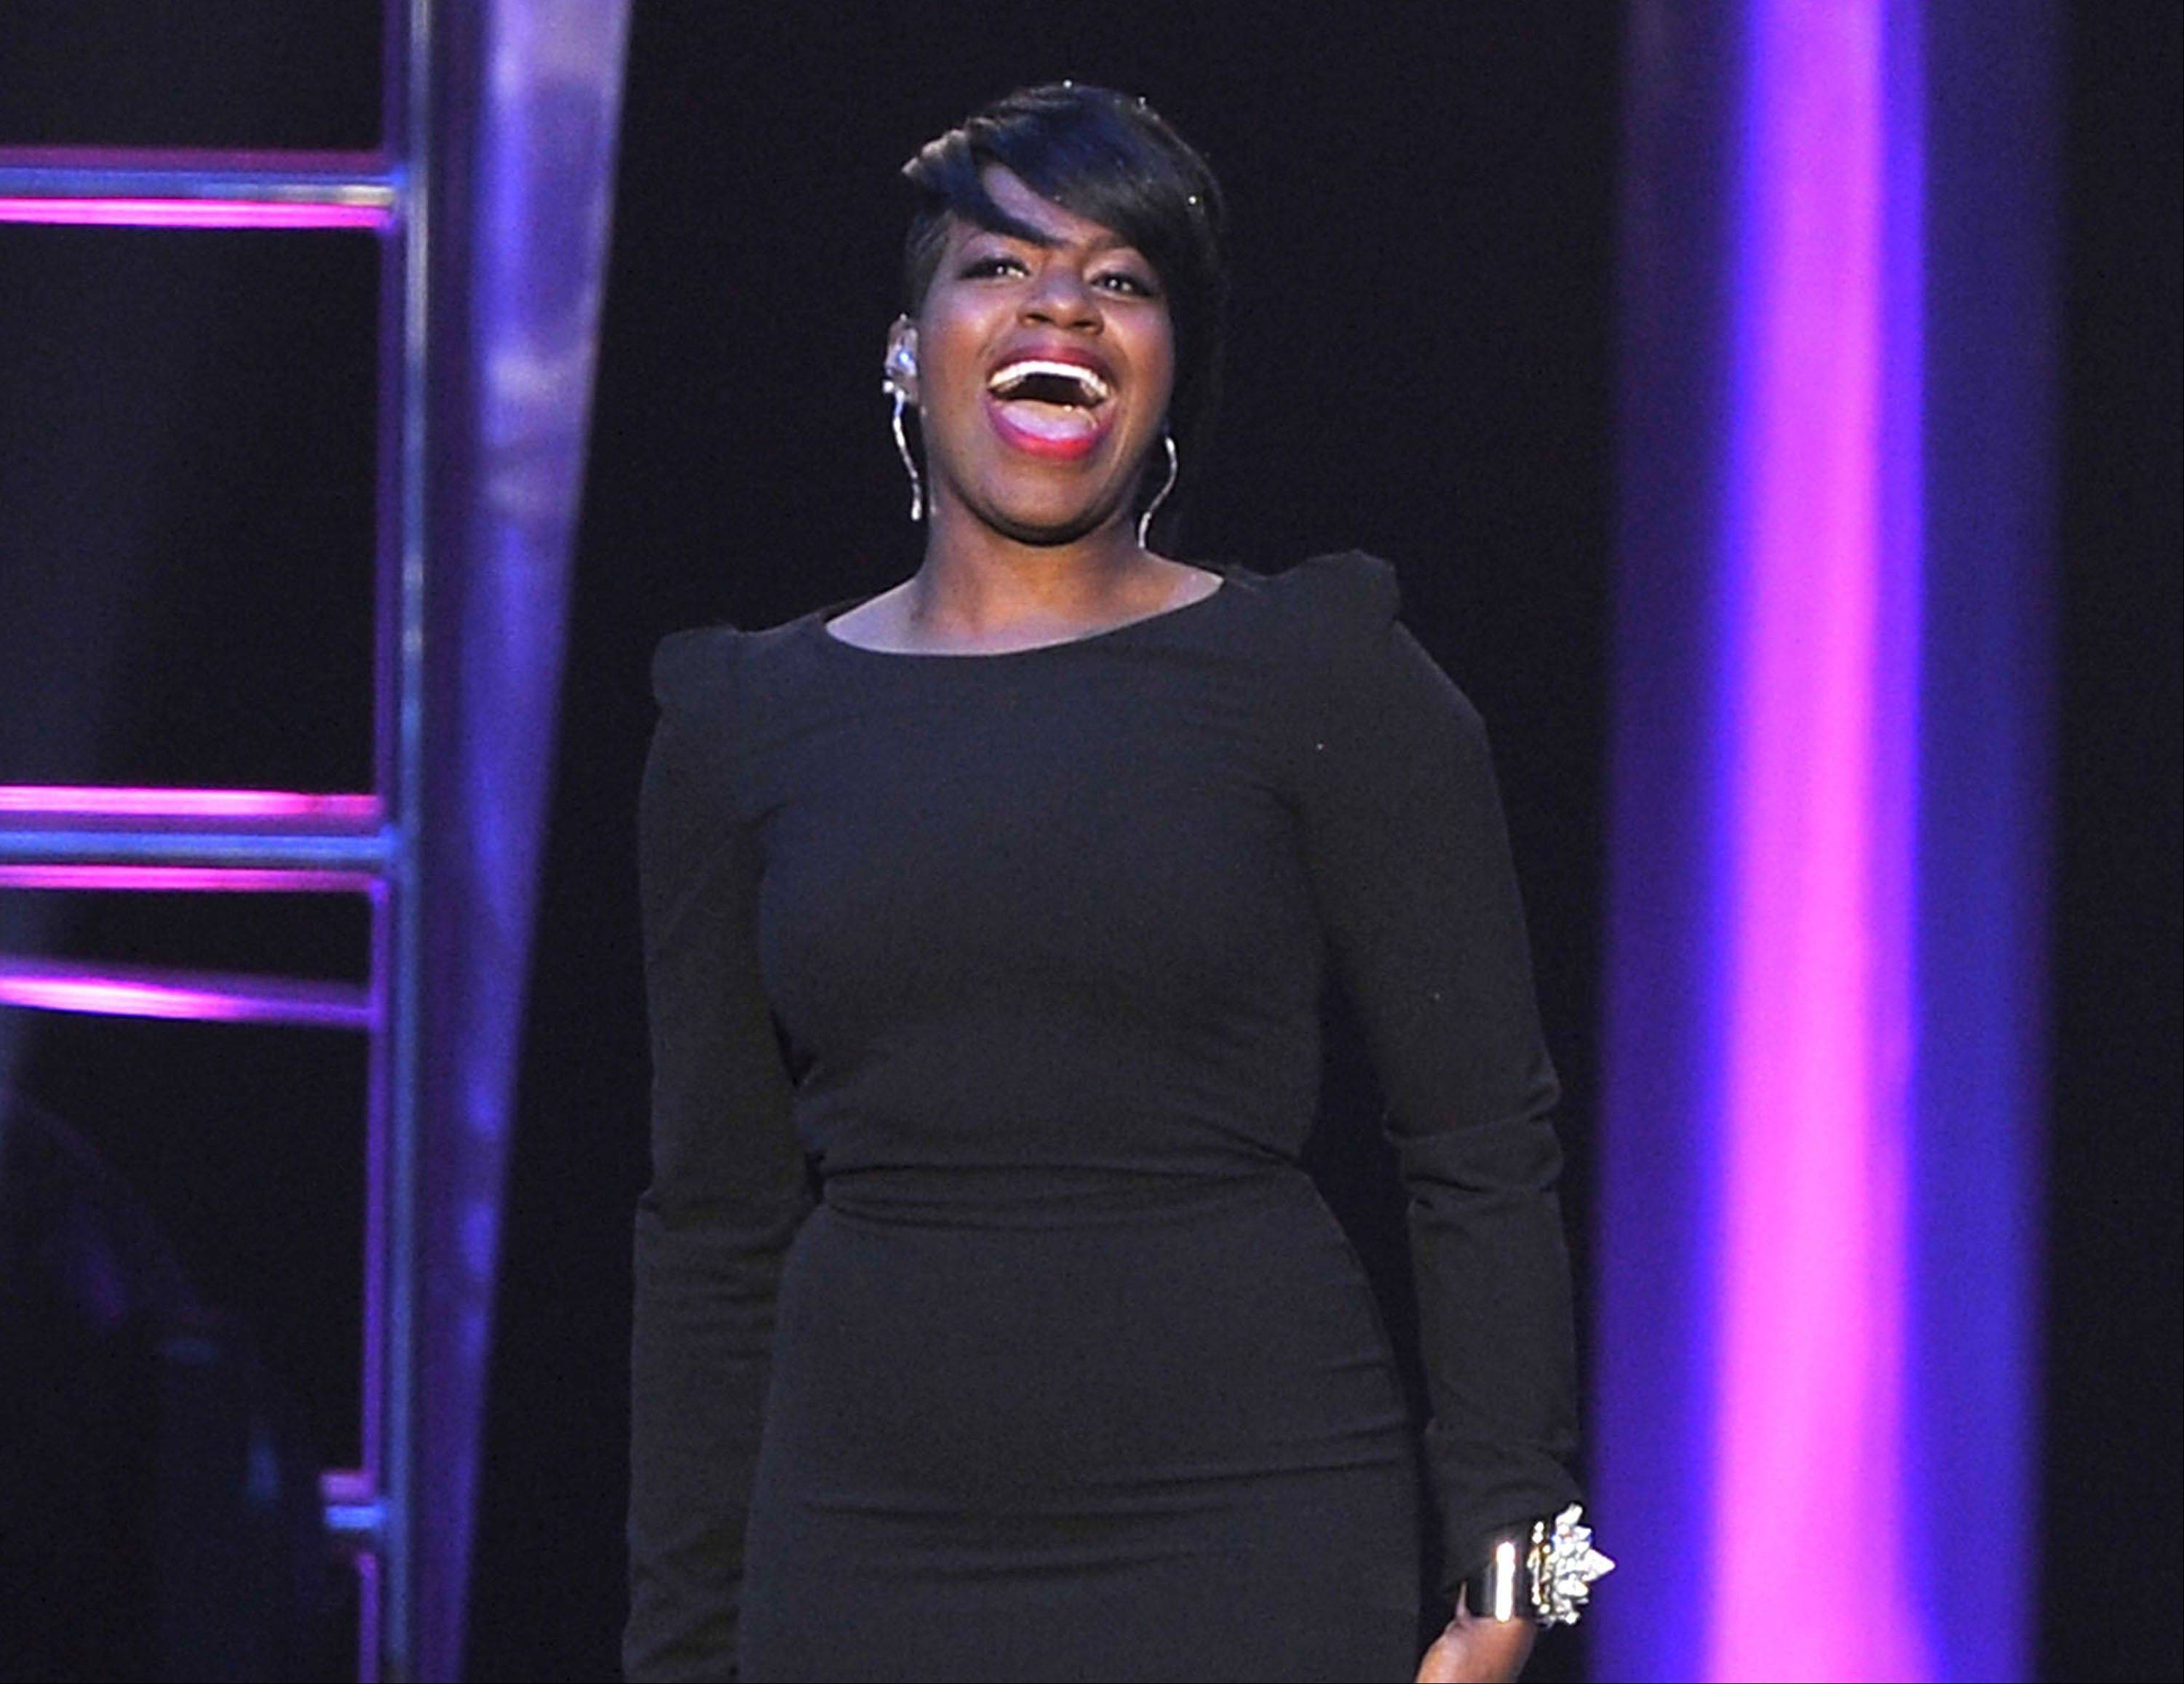 Fantasia, Donnie McClurkin, Marvin Winans and Bishop Paul S. Morton will perform in a gospel concert during Super Bowl weekend in New Orleans.